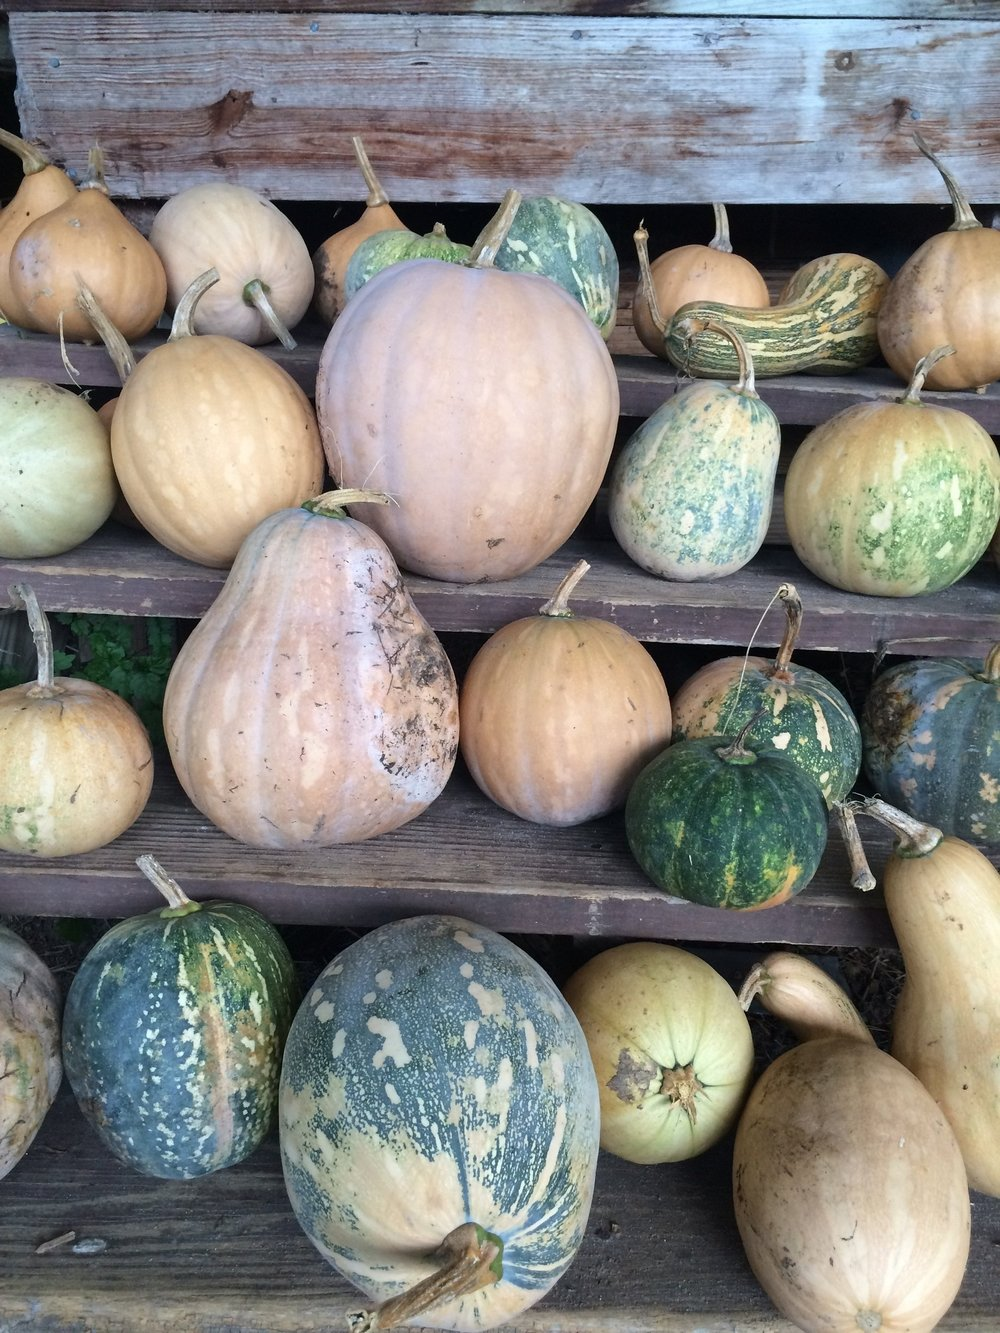 """This pumpkin is a true Southern heirloom,"" says Melissa DeSa of the 'Seminole' variety, found in abundance at Forage, the nonprofit she cofounded In Gainesville, Florida."